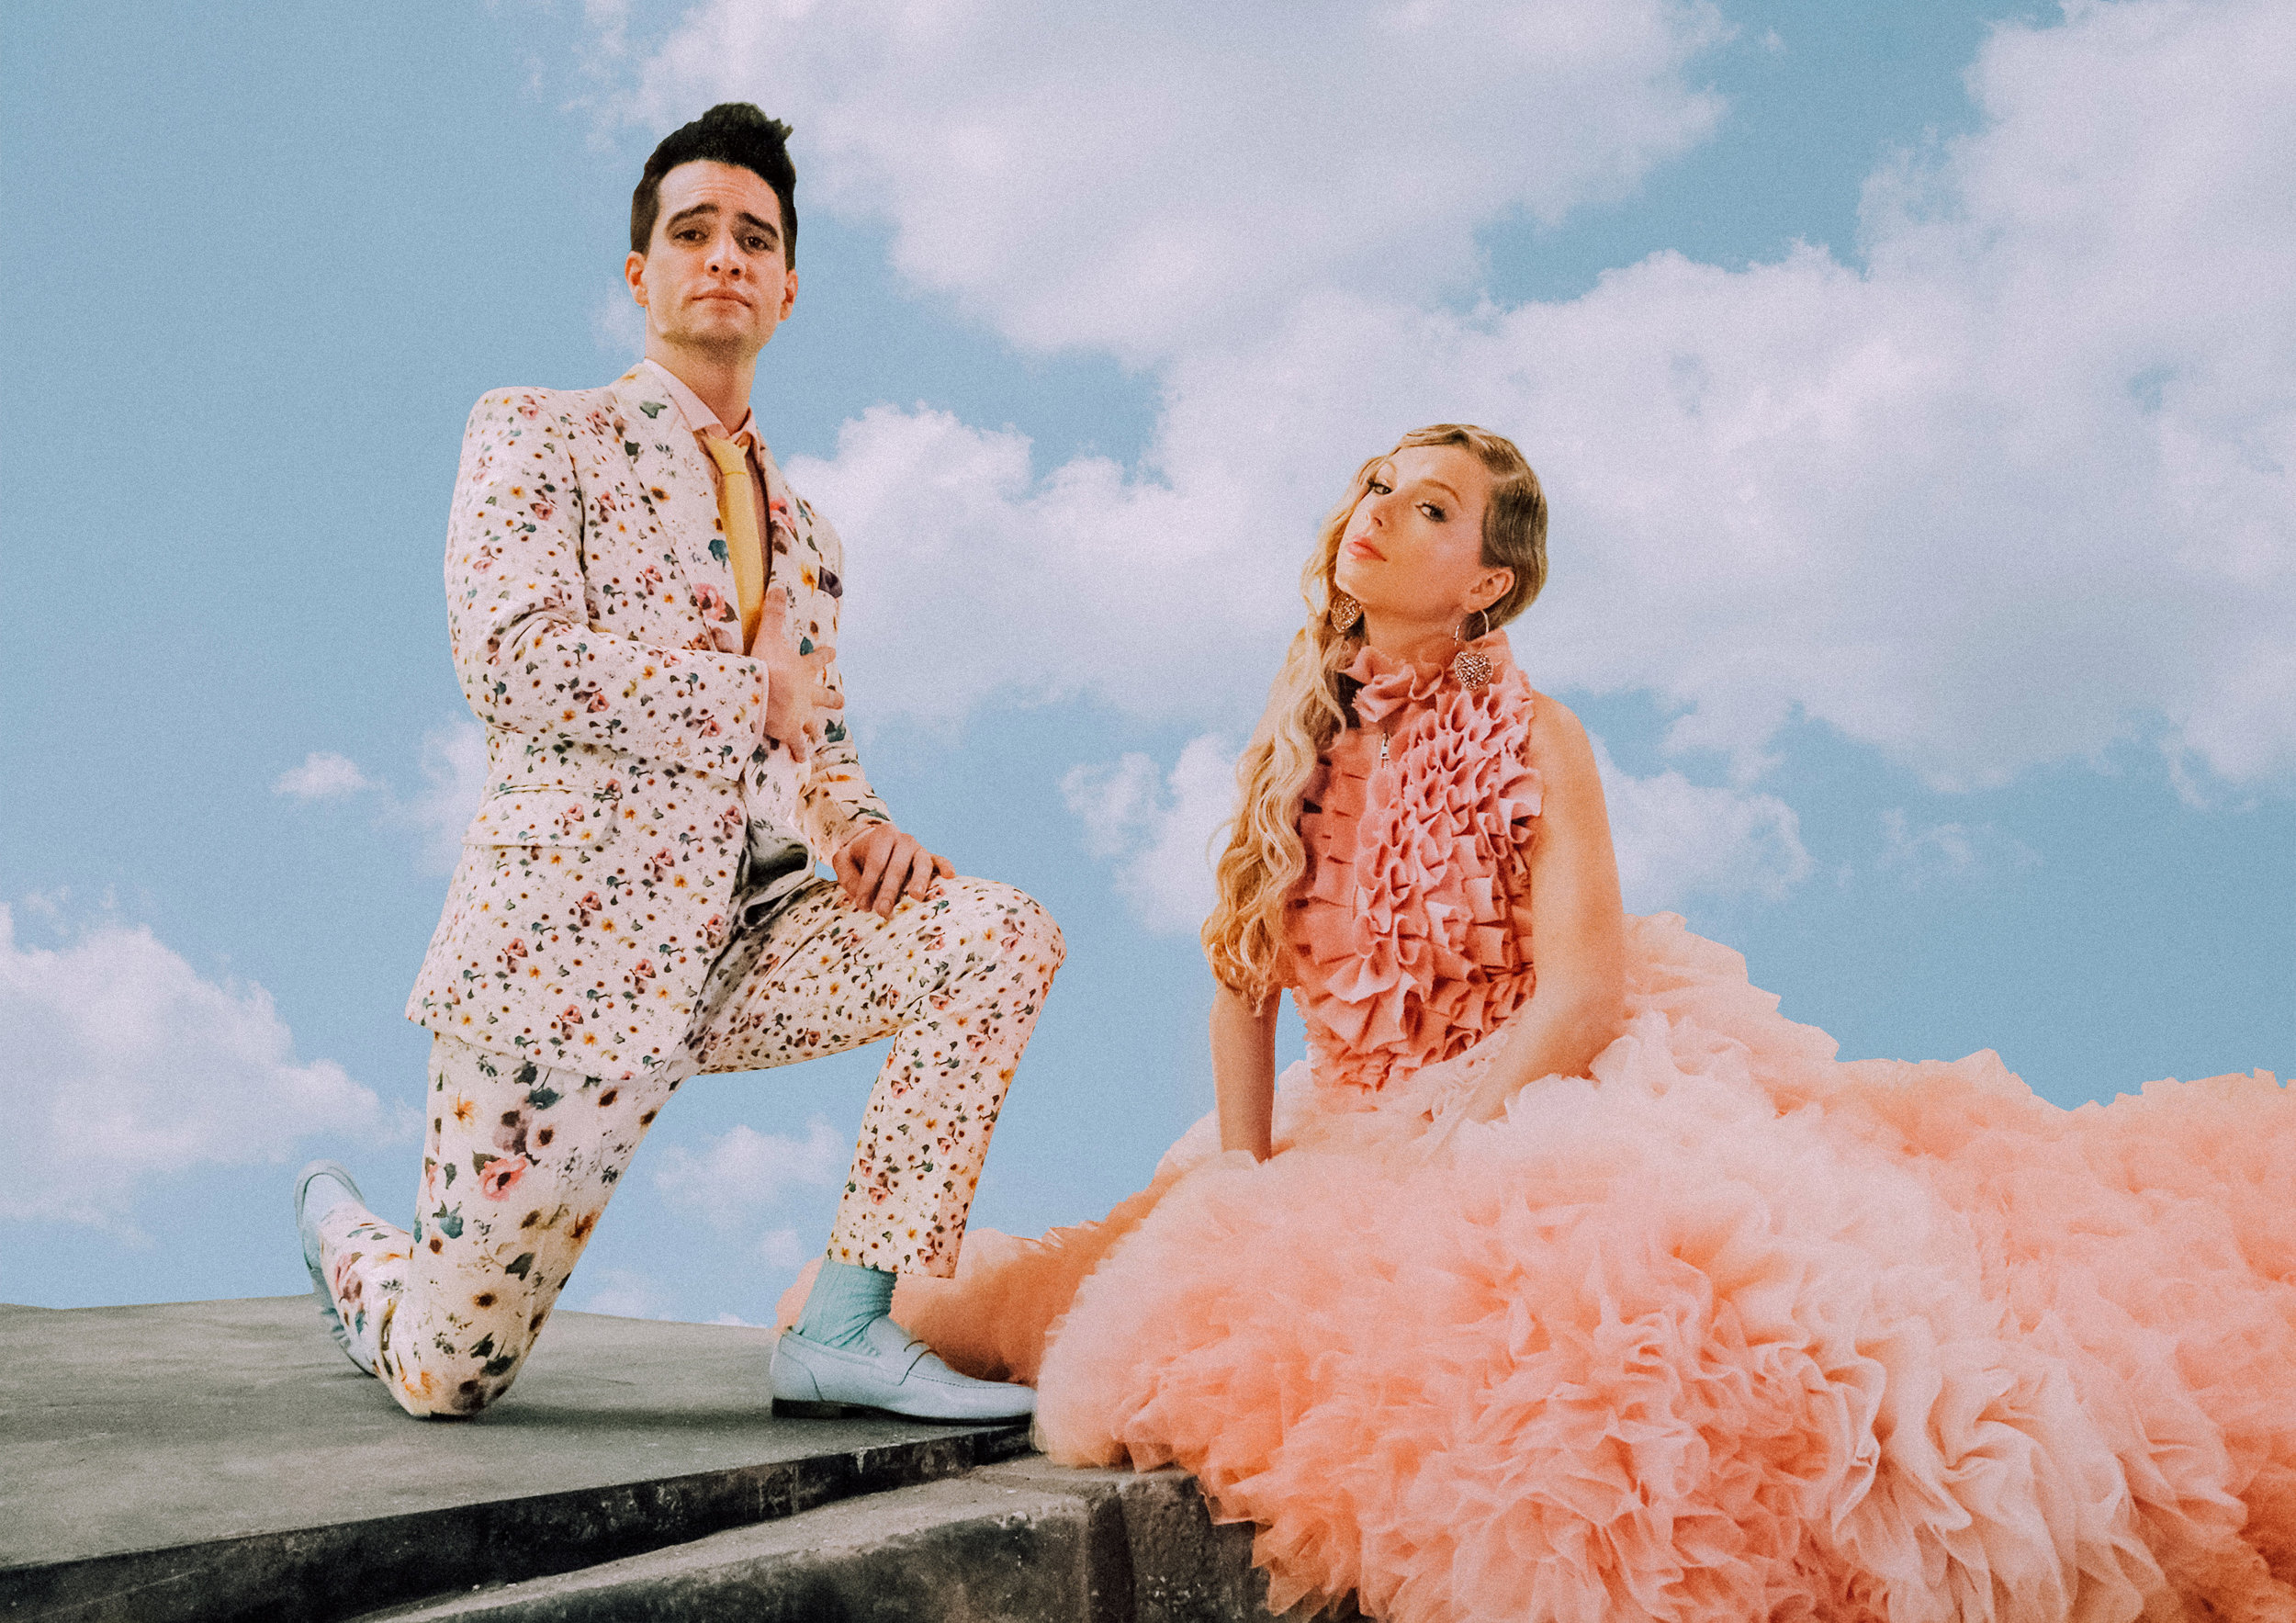 taylor_swift_and_brendon_urie_me!.jpg